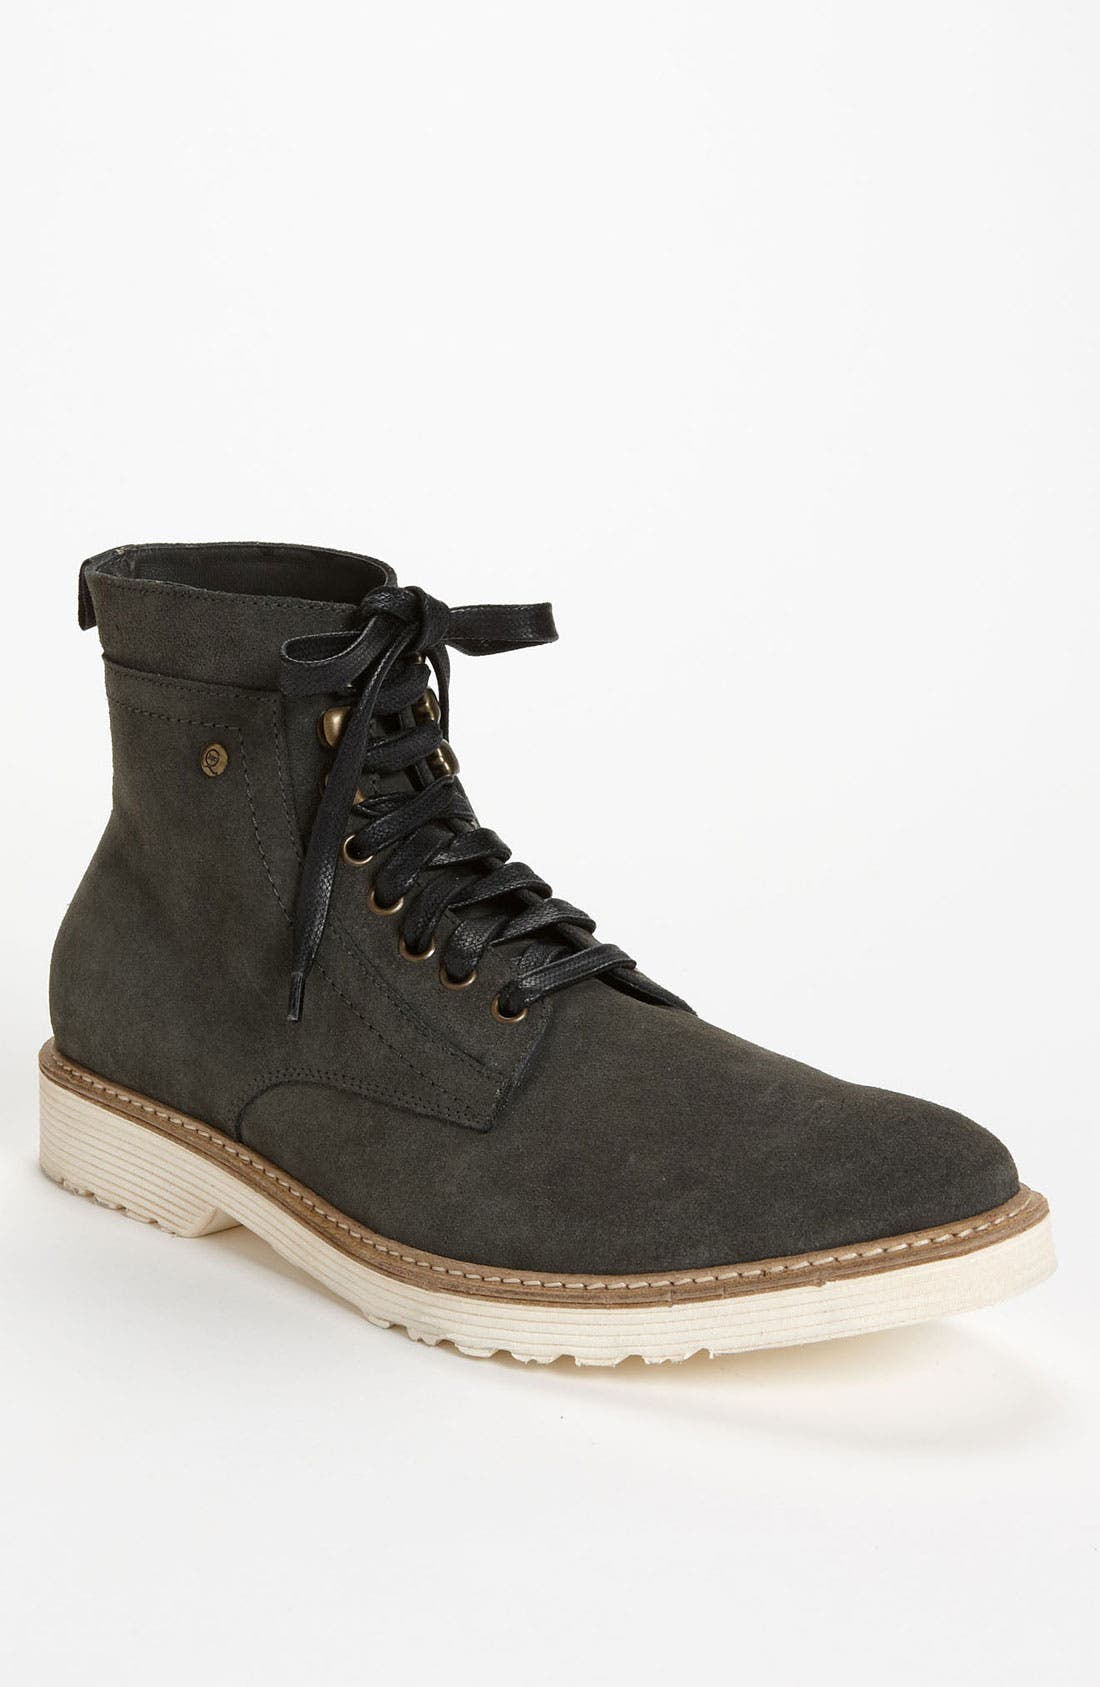 Main Image - McQ by Alexander McQueen 'Derby' Plain Toe Boot